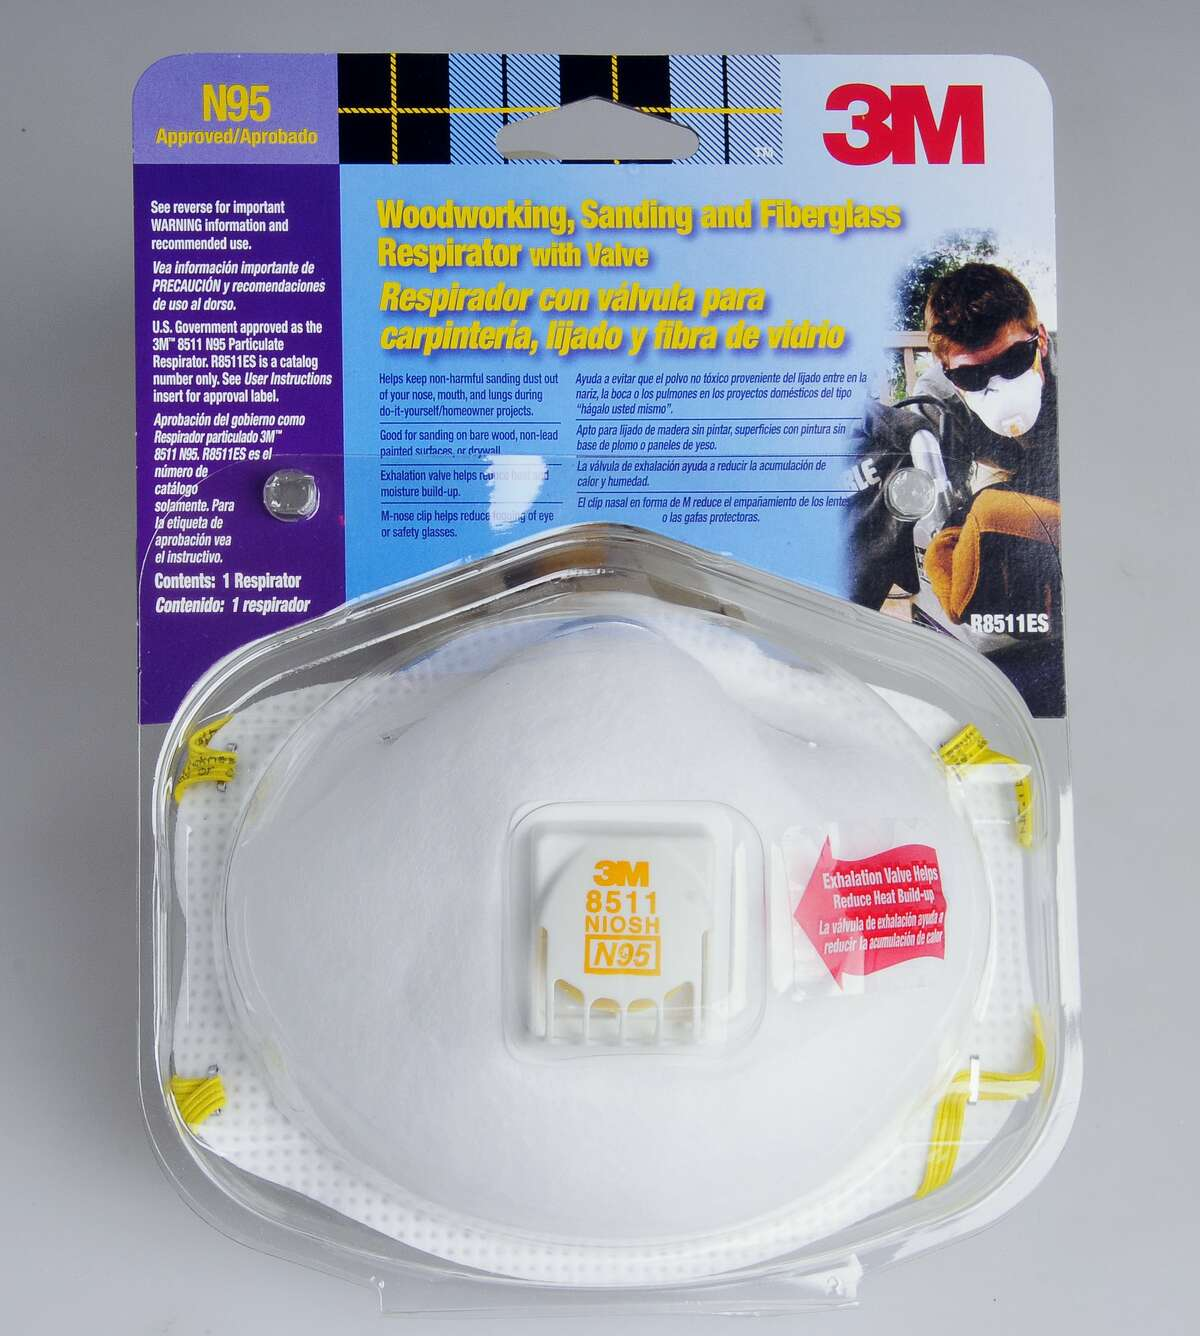 N95 masks feature particulate respirators, are designed to filter at least 95 percent of airborne particles and are approved by the National Institute for Occupational Safety and Health.